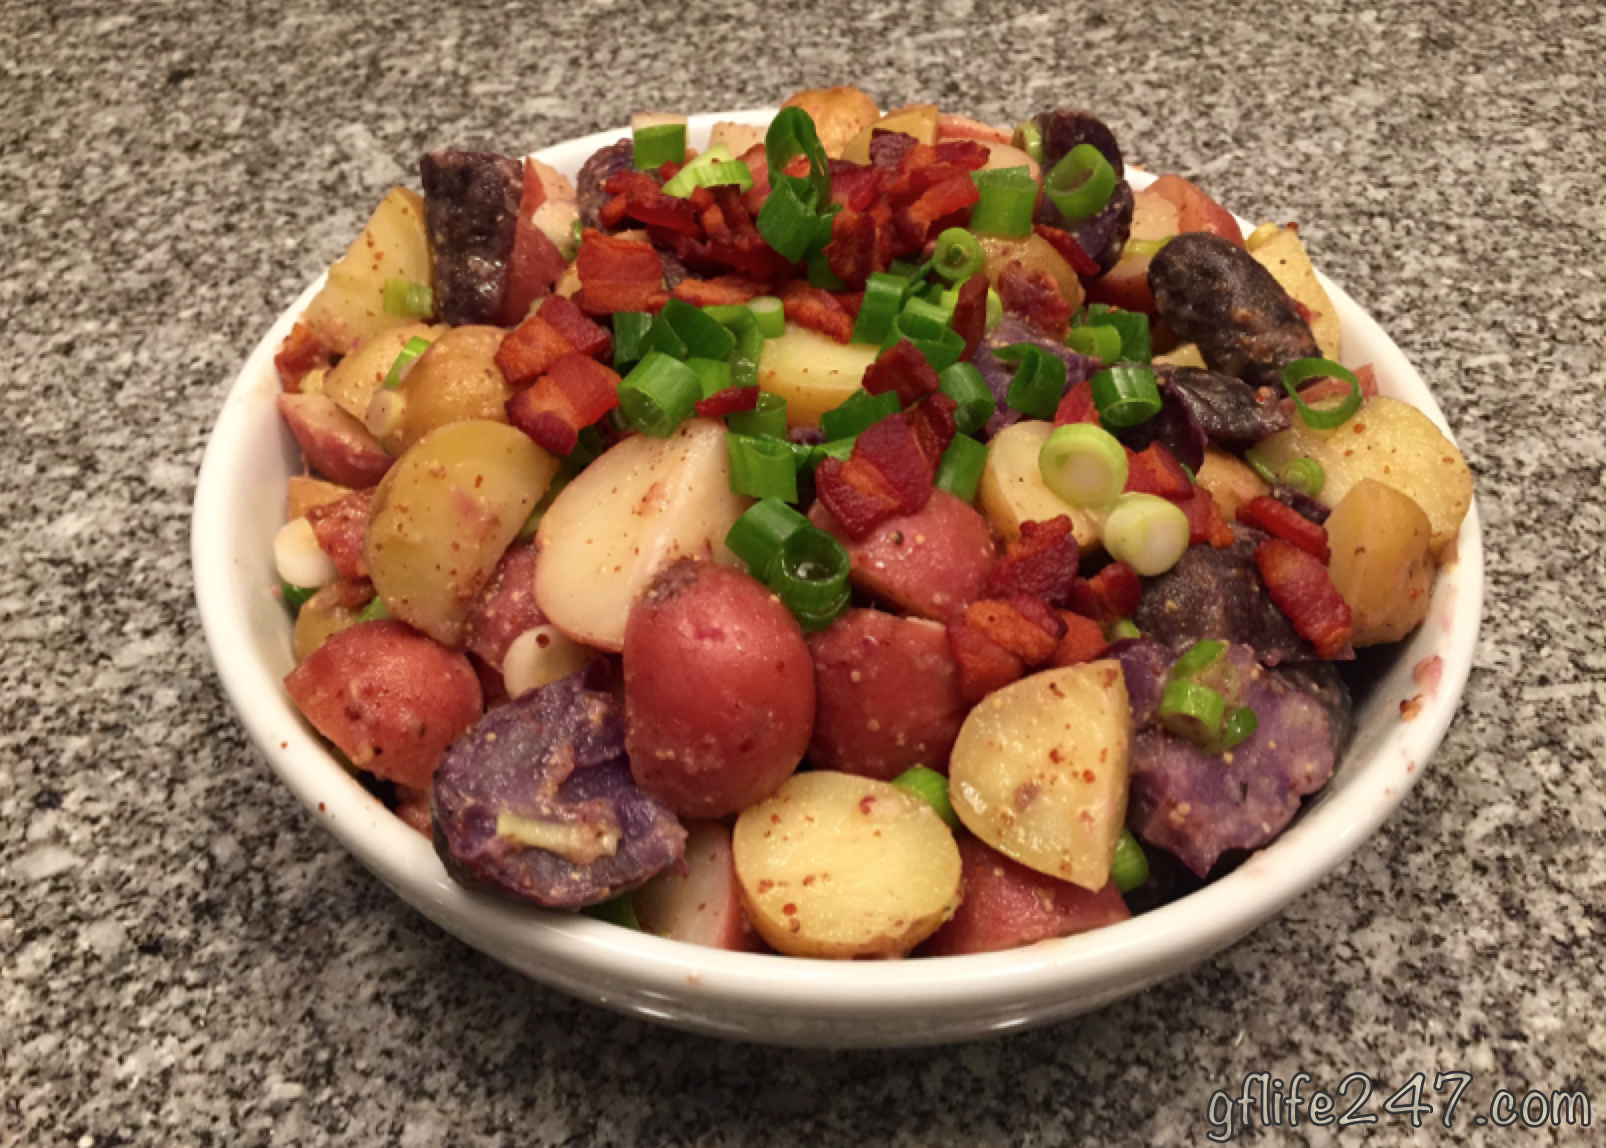 Mayo Free Tri-Colored Potato Salad (GF, DF)